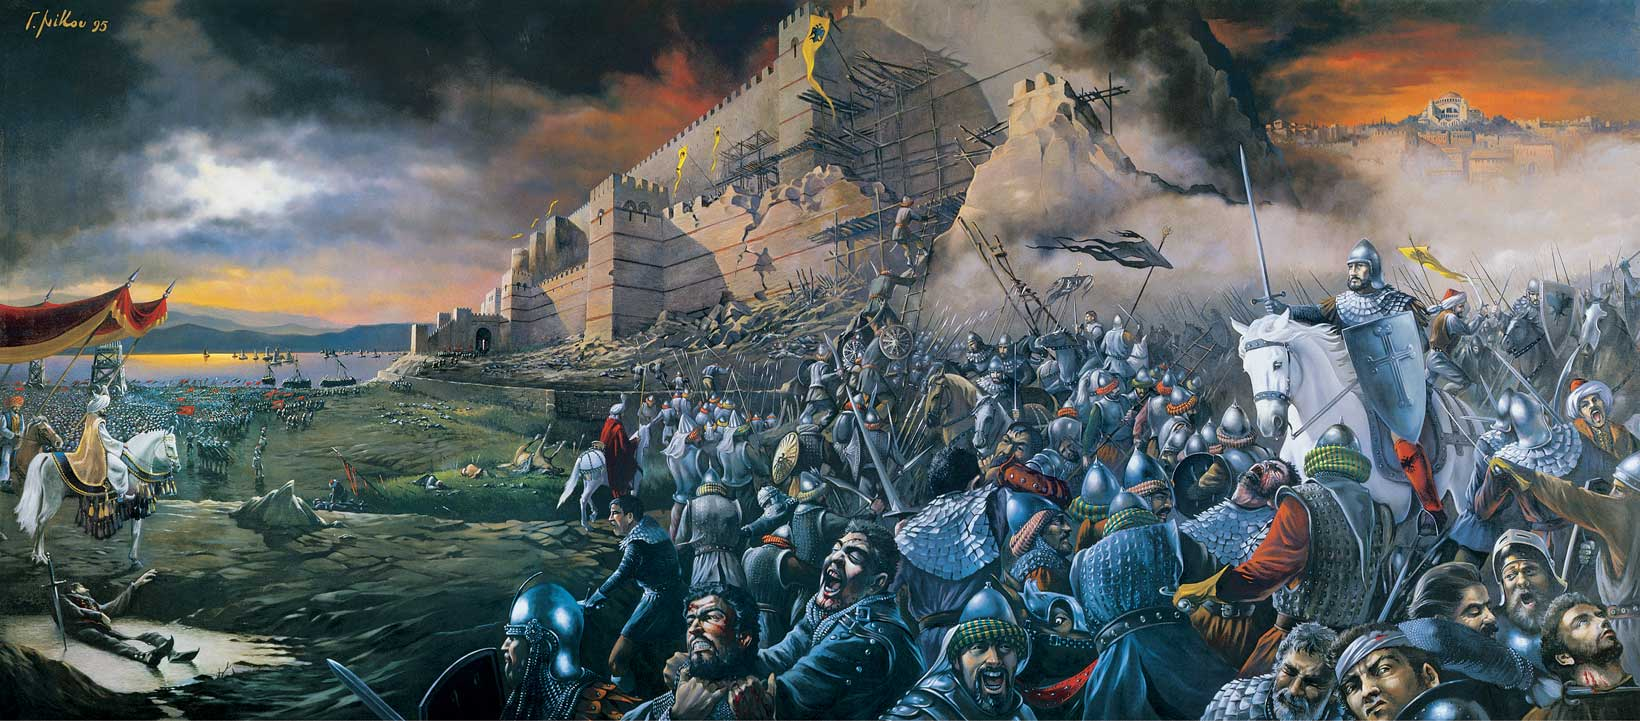 fall-of-constantinople-by-ottoman-empire